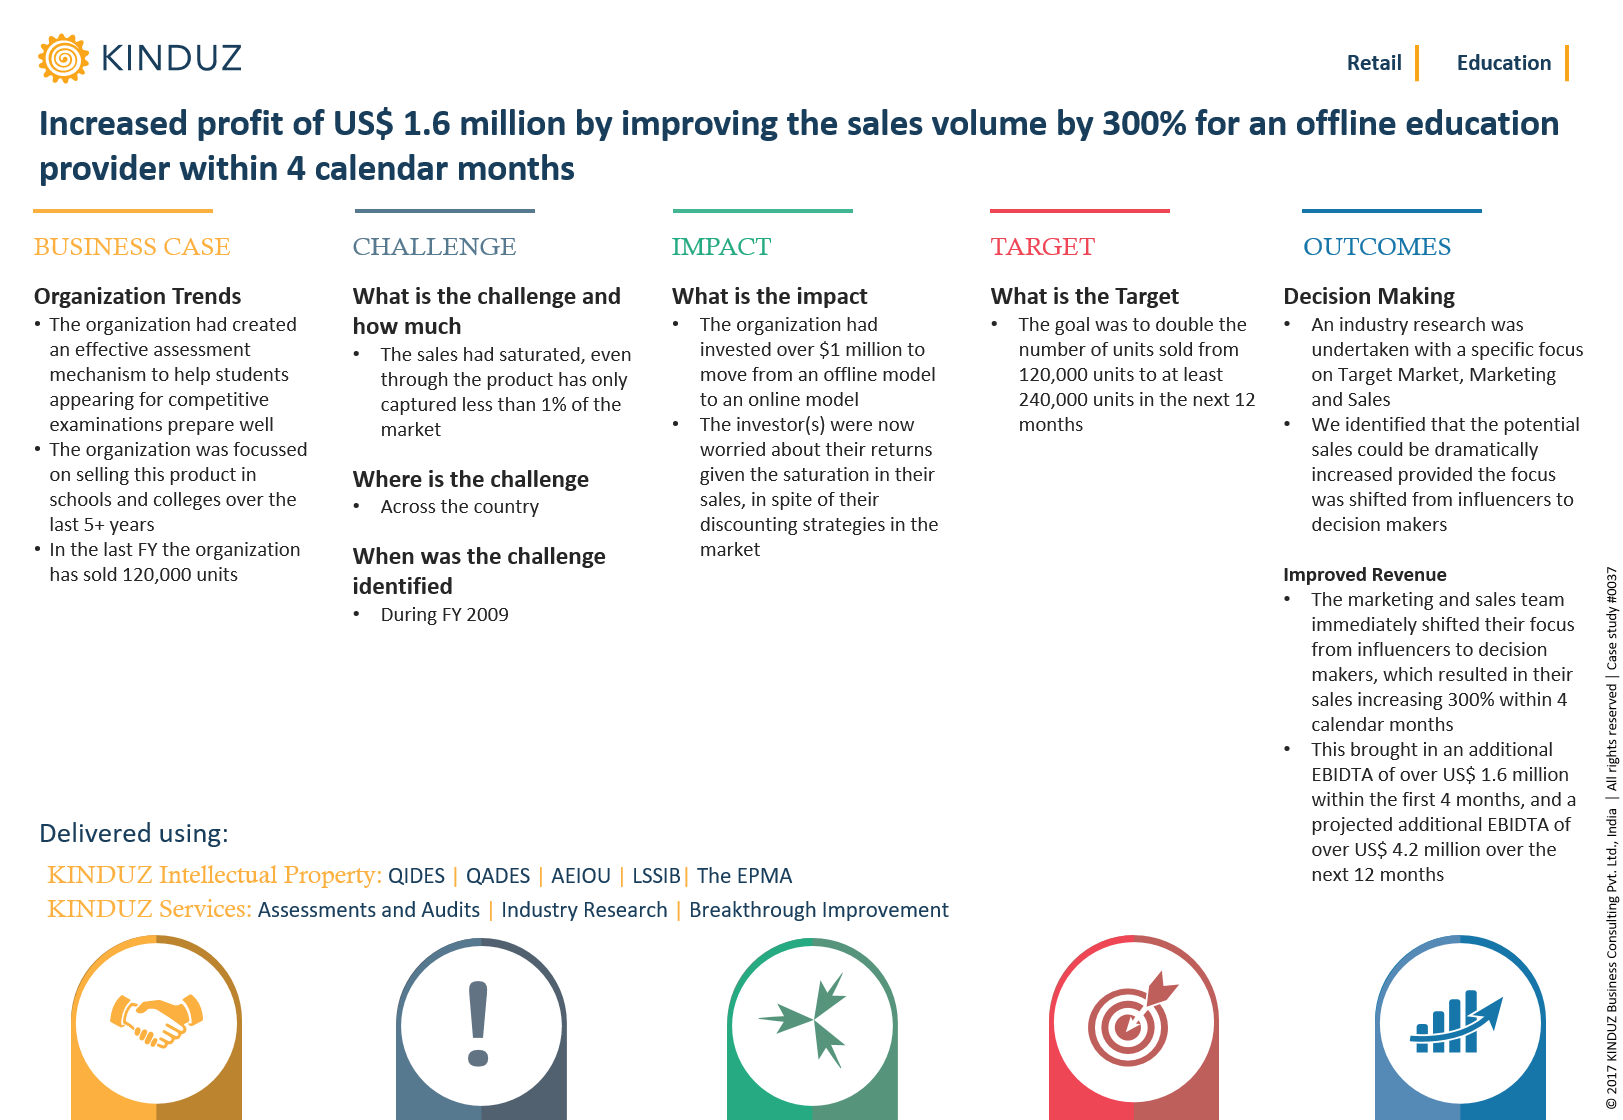 increased-profit-of-us-1.6-million-by-improving-the-sales-volume-by-300-for-an-offline-education-provider-within-4-calendar-months